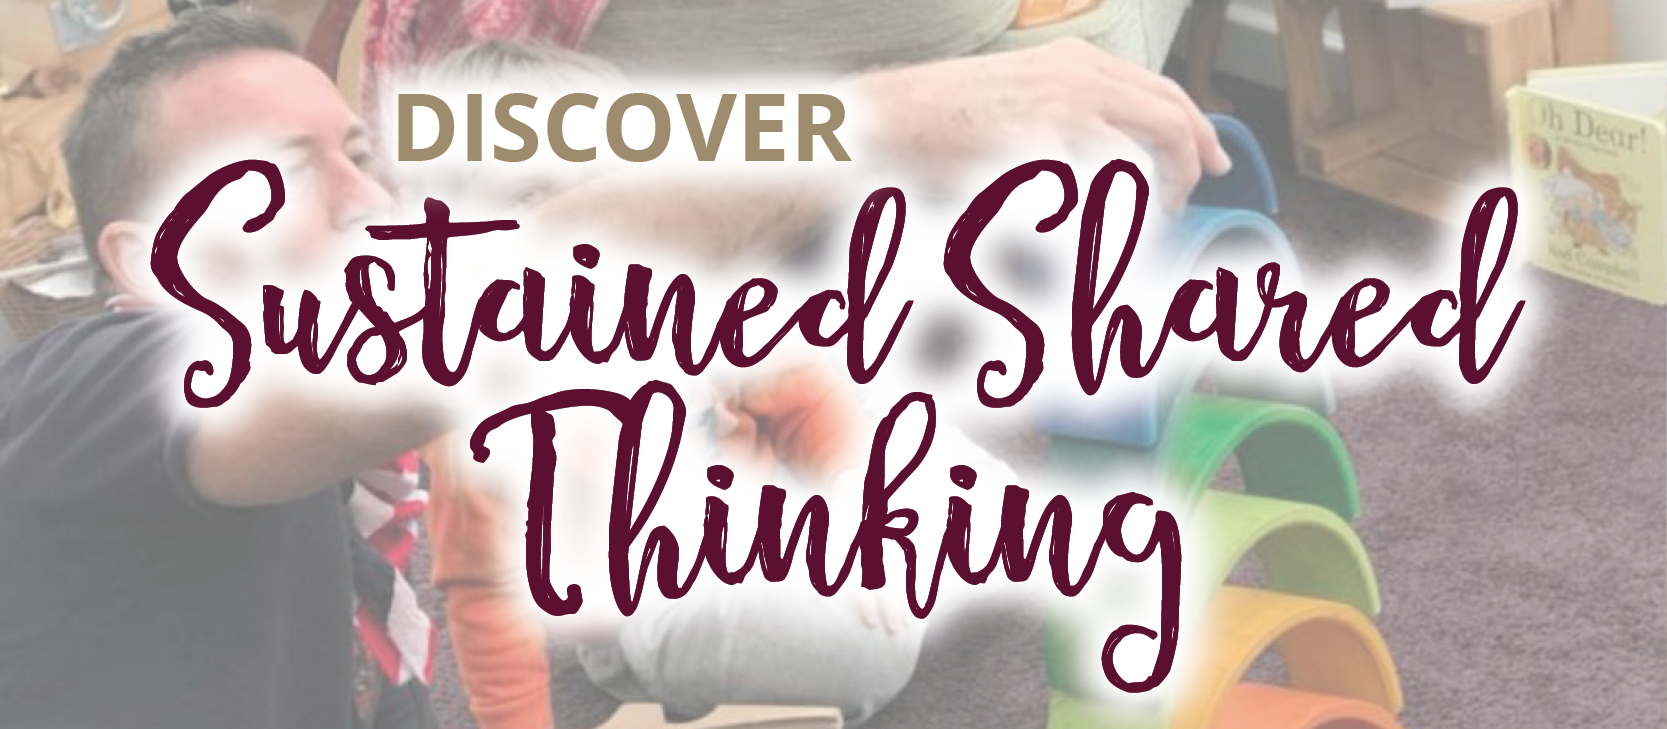 North Gloucestershire Network - Discover Sustained Shared Thinking - 25/06/2022